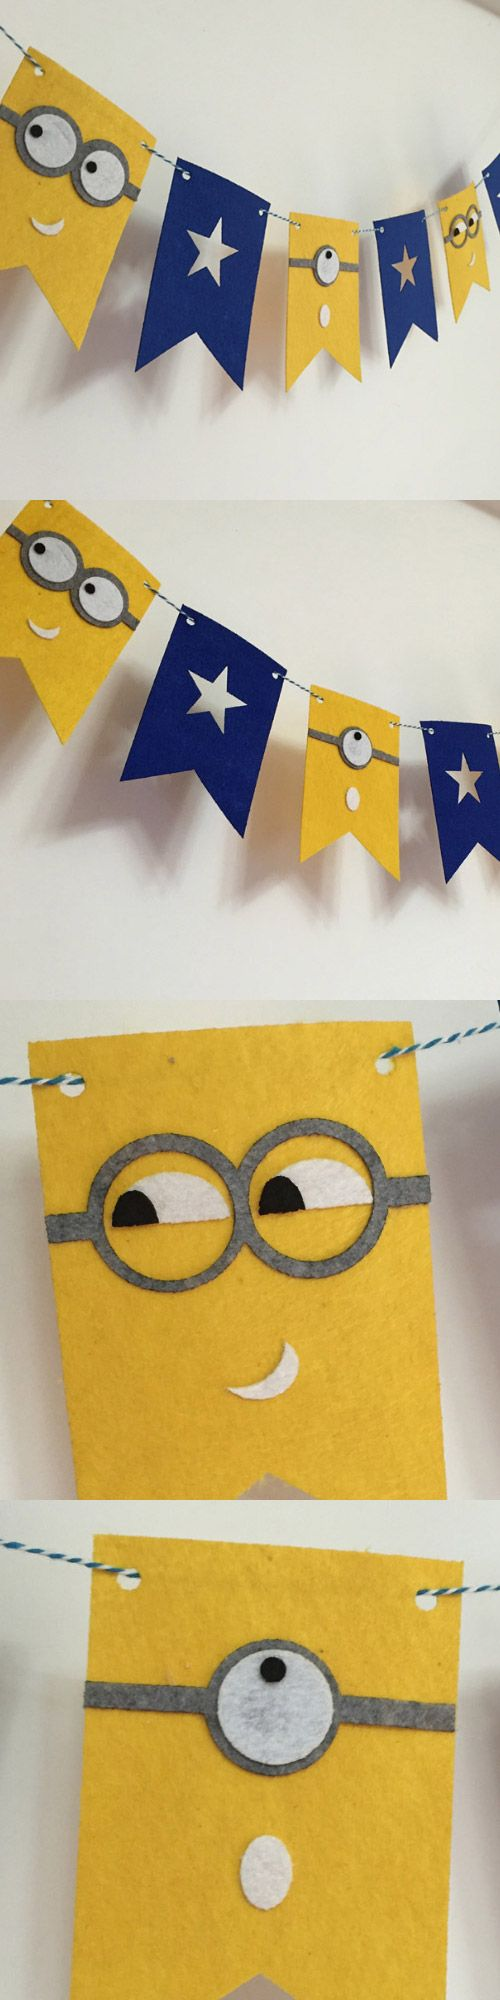 Vector bunting flags lovely celebration card with colorful paper - Felt Birthday Flag Minions Banner Kids Baby Shower Bridal Shower Birthday Party Kid Room Decor Garland